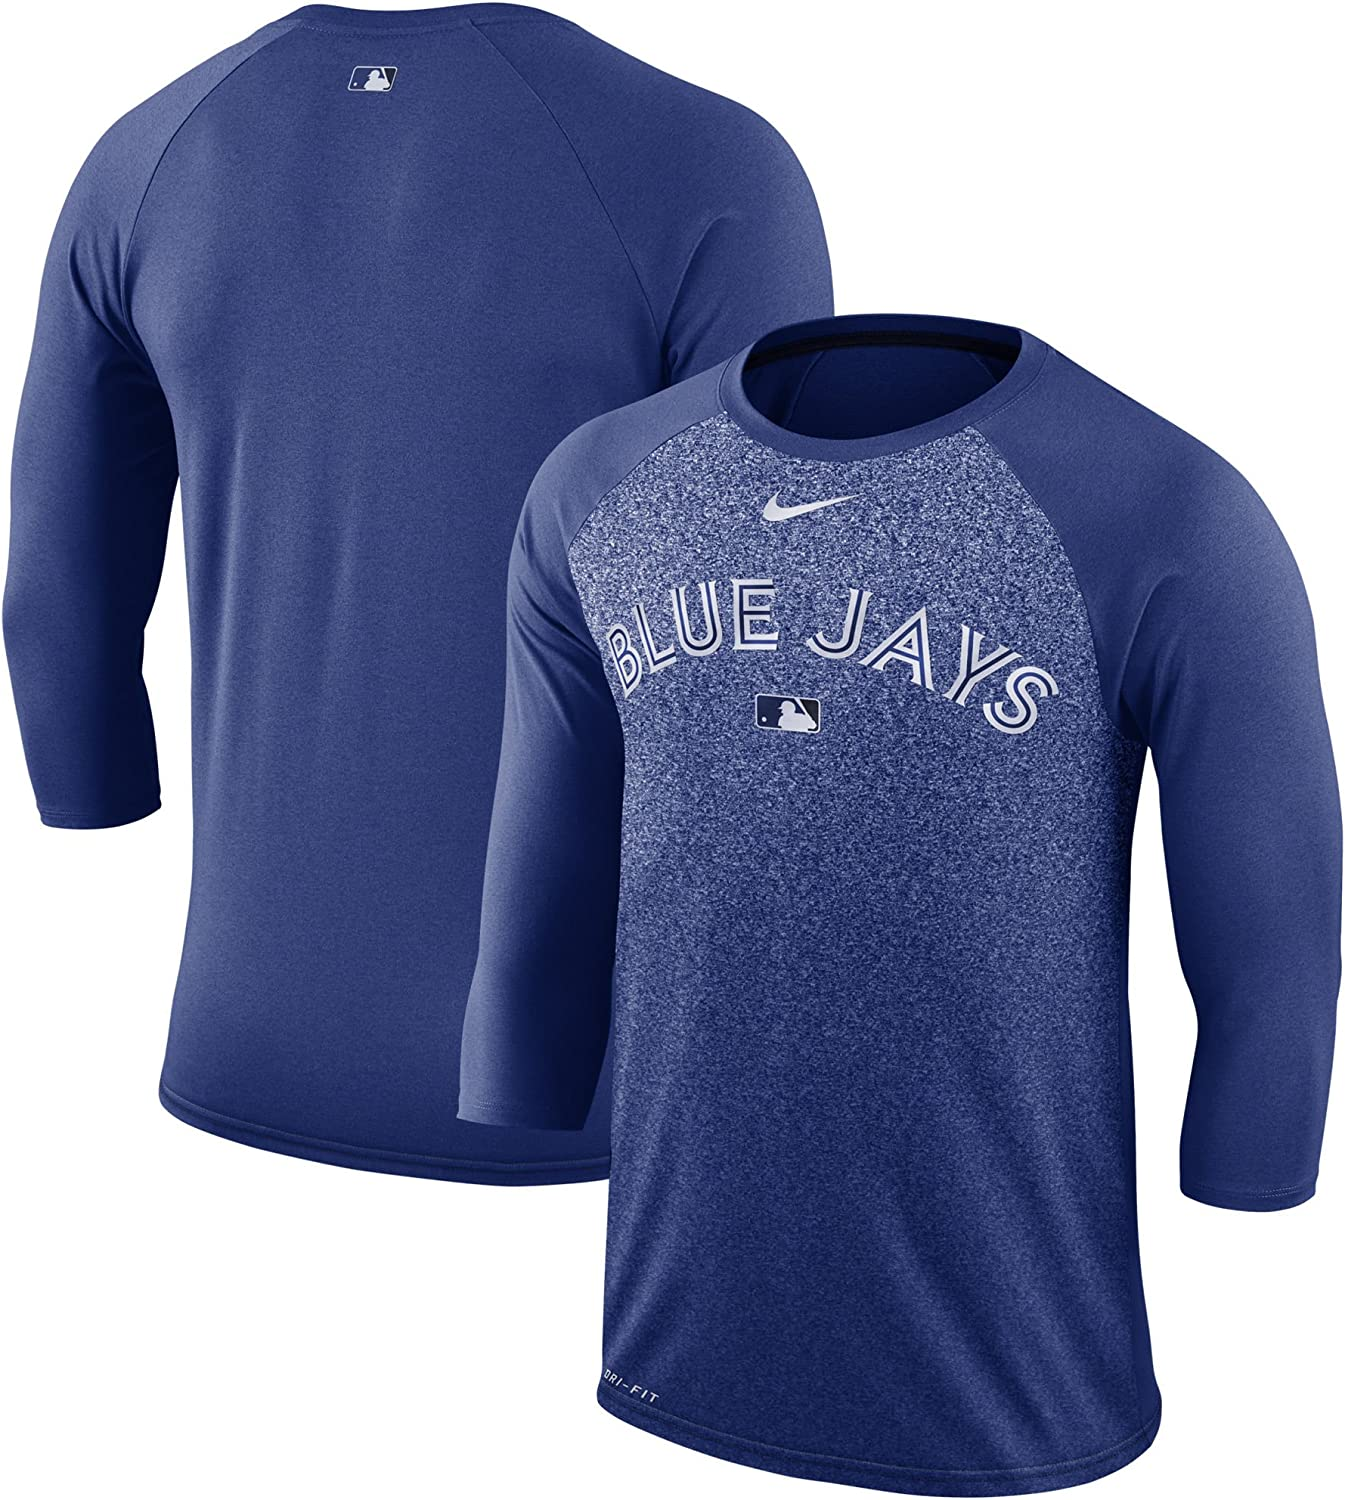 Men's Tgoldnto blueee Jays Nike Royal Authentic Collection Legend 3 4Sleeve Raglan Performance TShirt